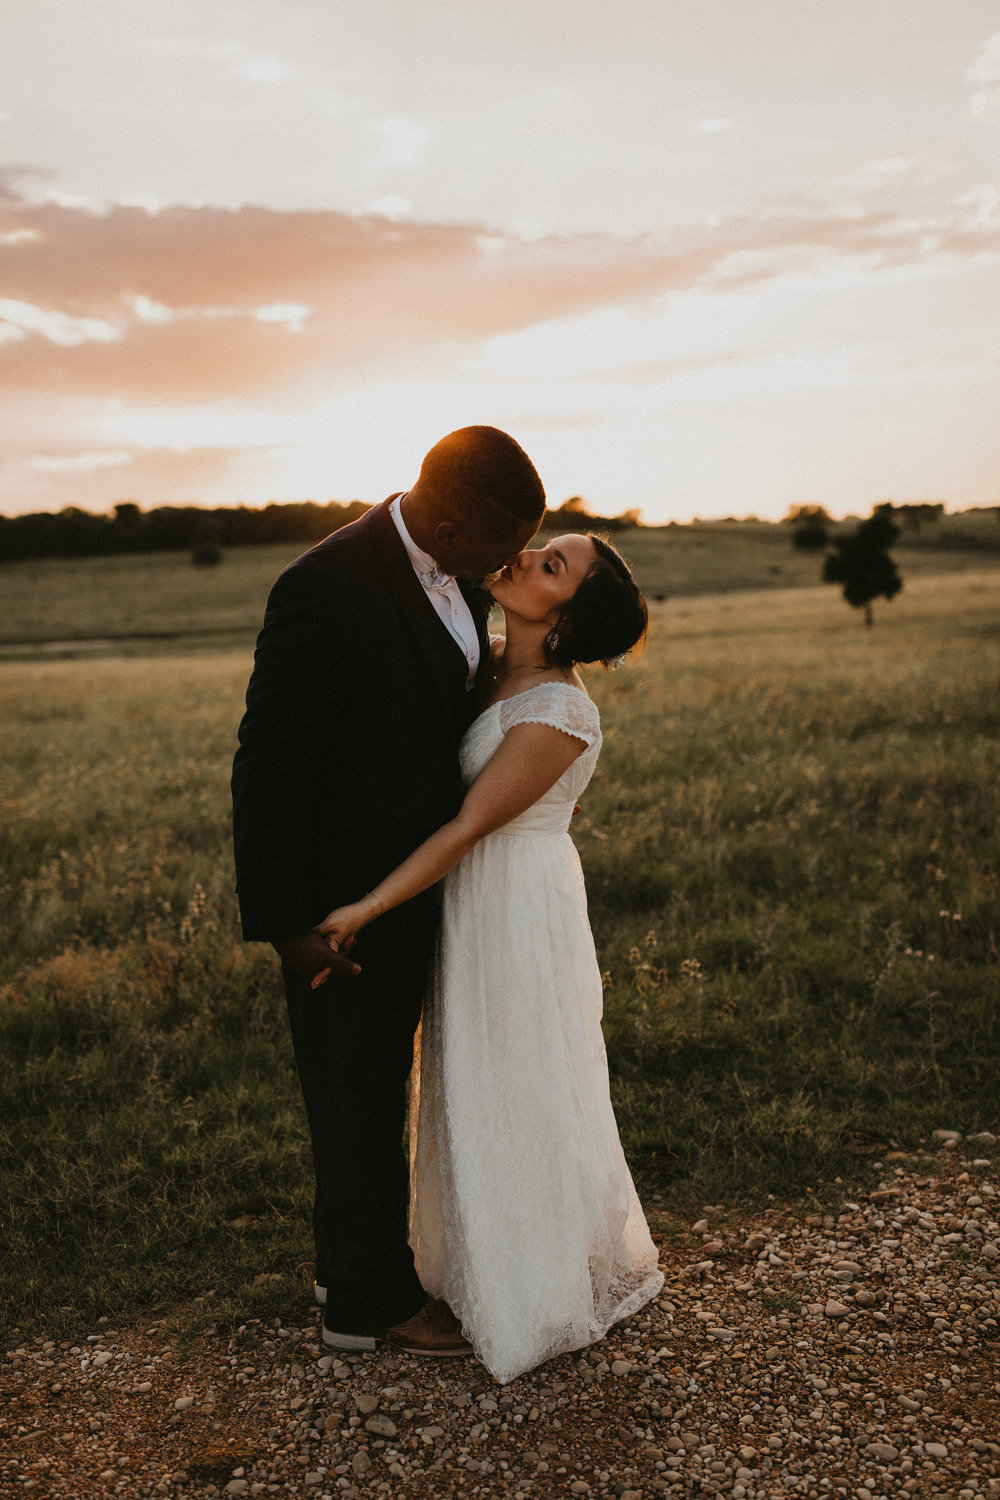 NO STRESS - If there is anything that stresses you out about your wedding day, don't do whatever that is. If the planning aspect stress you out, hire a planner. If extended family drama is stressing you out, don't invite them. If the finances are adding stress to your life, have a smaller wedding. If the garter toss feels awkward and sexist, don't do it. If your family is amplifying your stress levels, tell them they need to be a supportive rock and hear you out.Seriously, your day should be incredibly fun & drenched in love. If there is something blocking that, fix it or nix it.